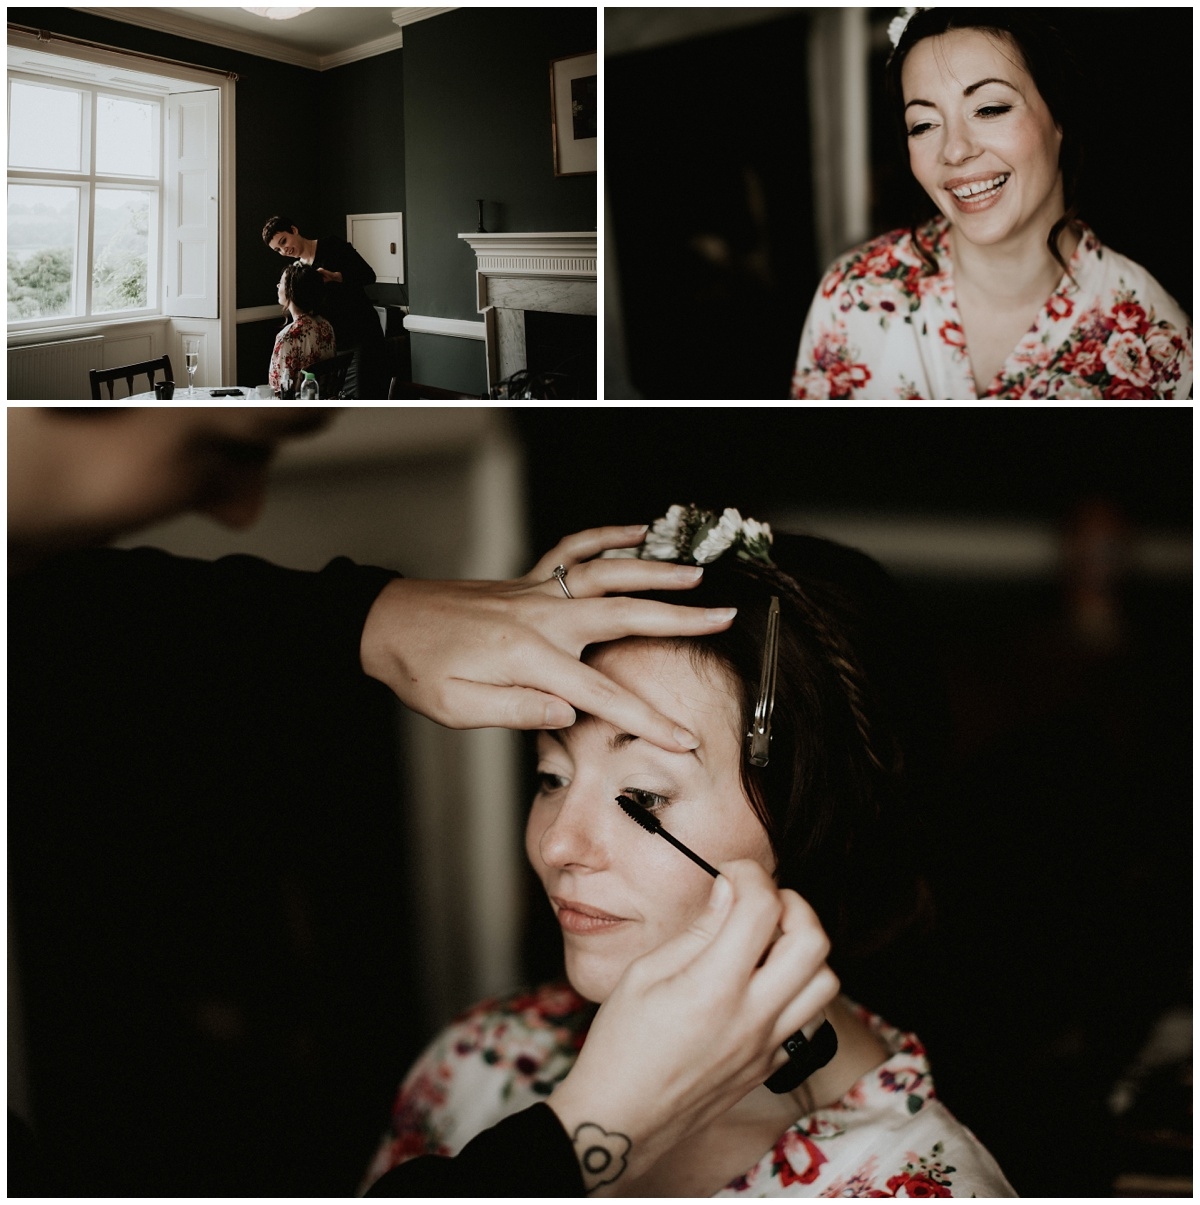 Make up by Omie Megan, Photograph by Lauren Scotti Photographer